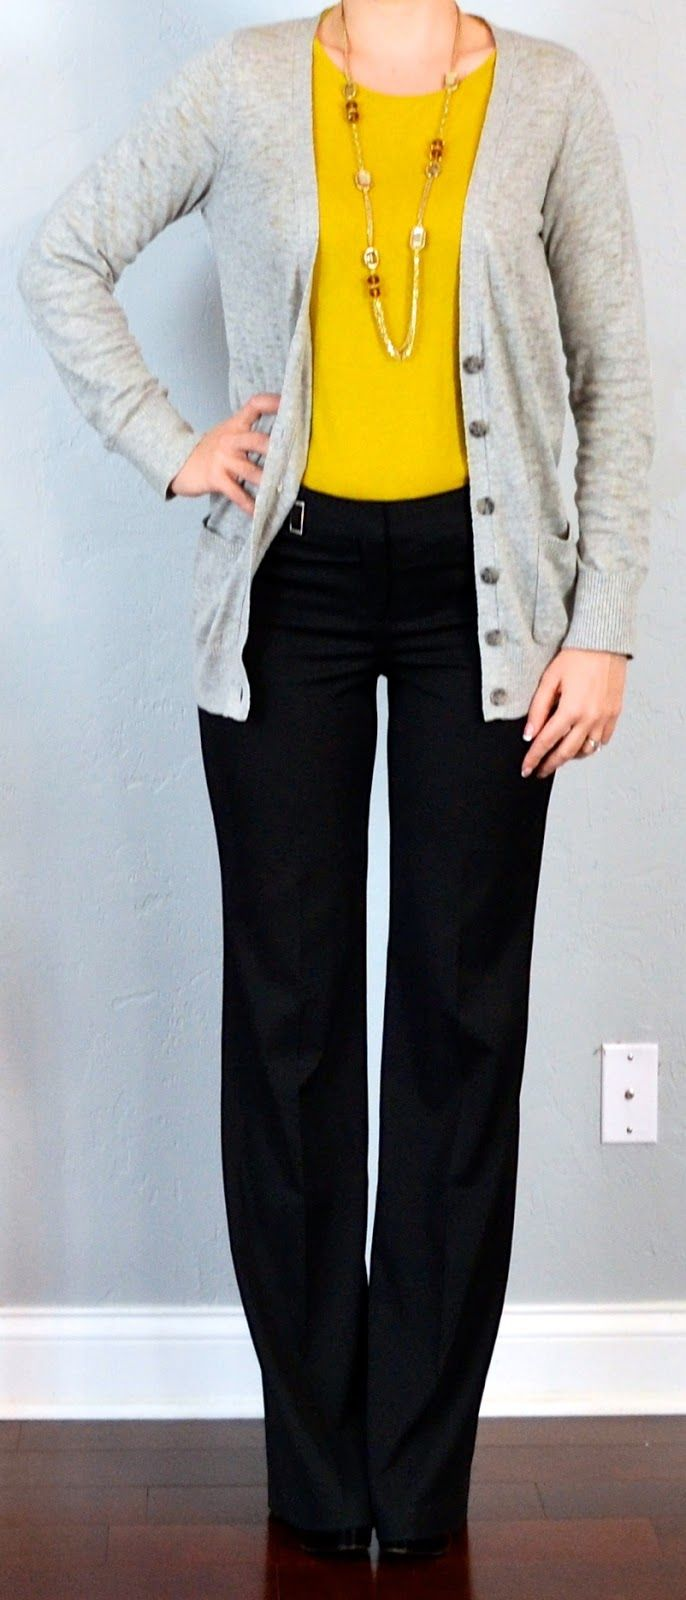 Outfit Posts: outfit posts: grey boyfriend cardigan, mustard shirt, black editor pants